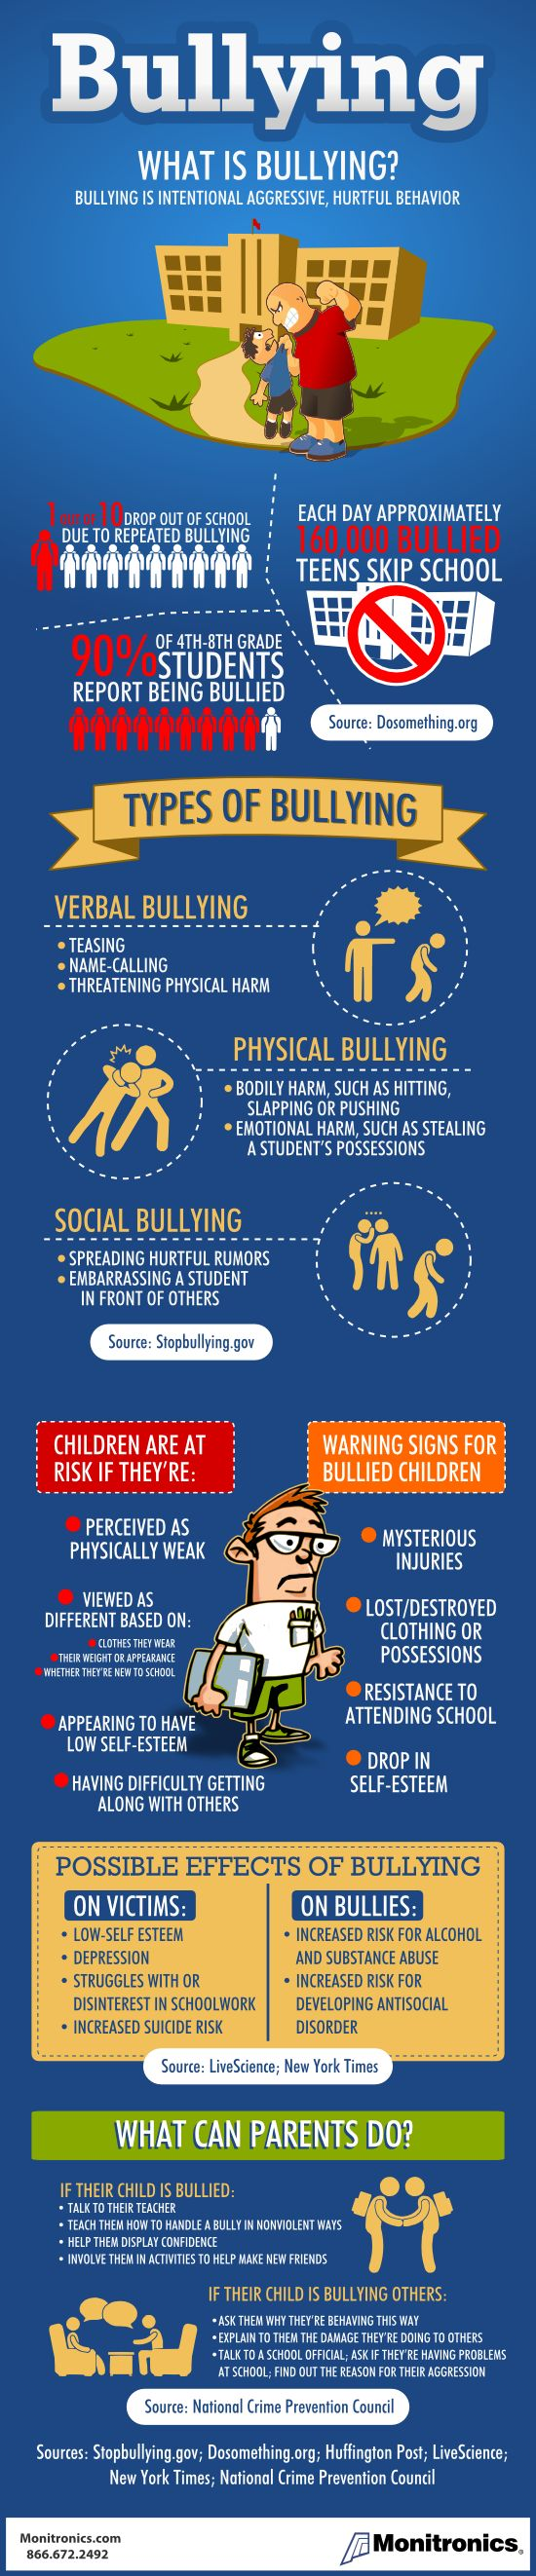 National Bullying Prevention Month – a campaign dedicated to educating and raising awareness of bullying and how